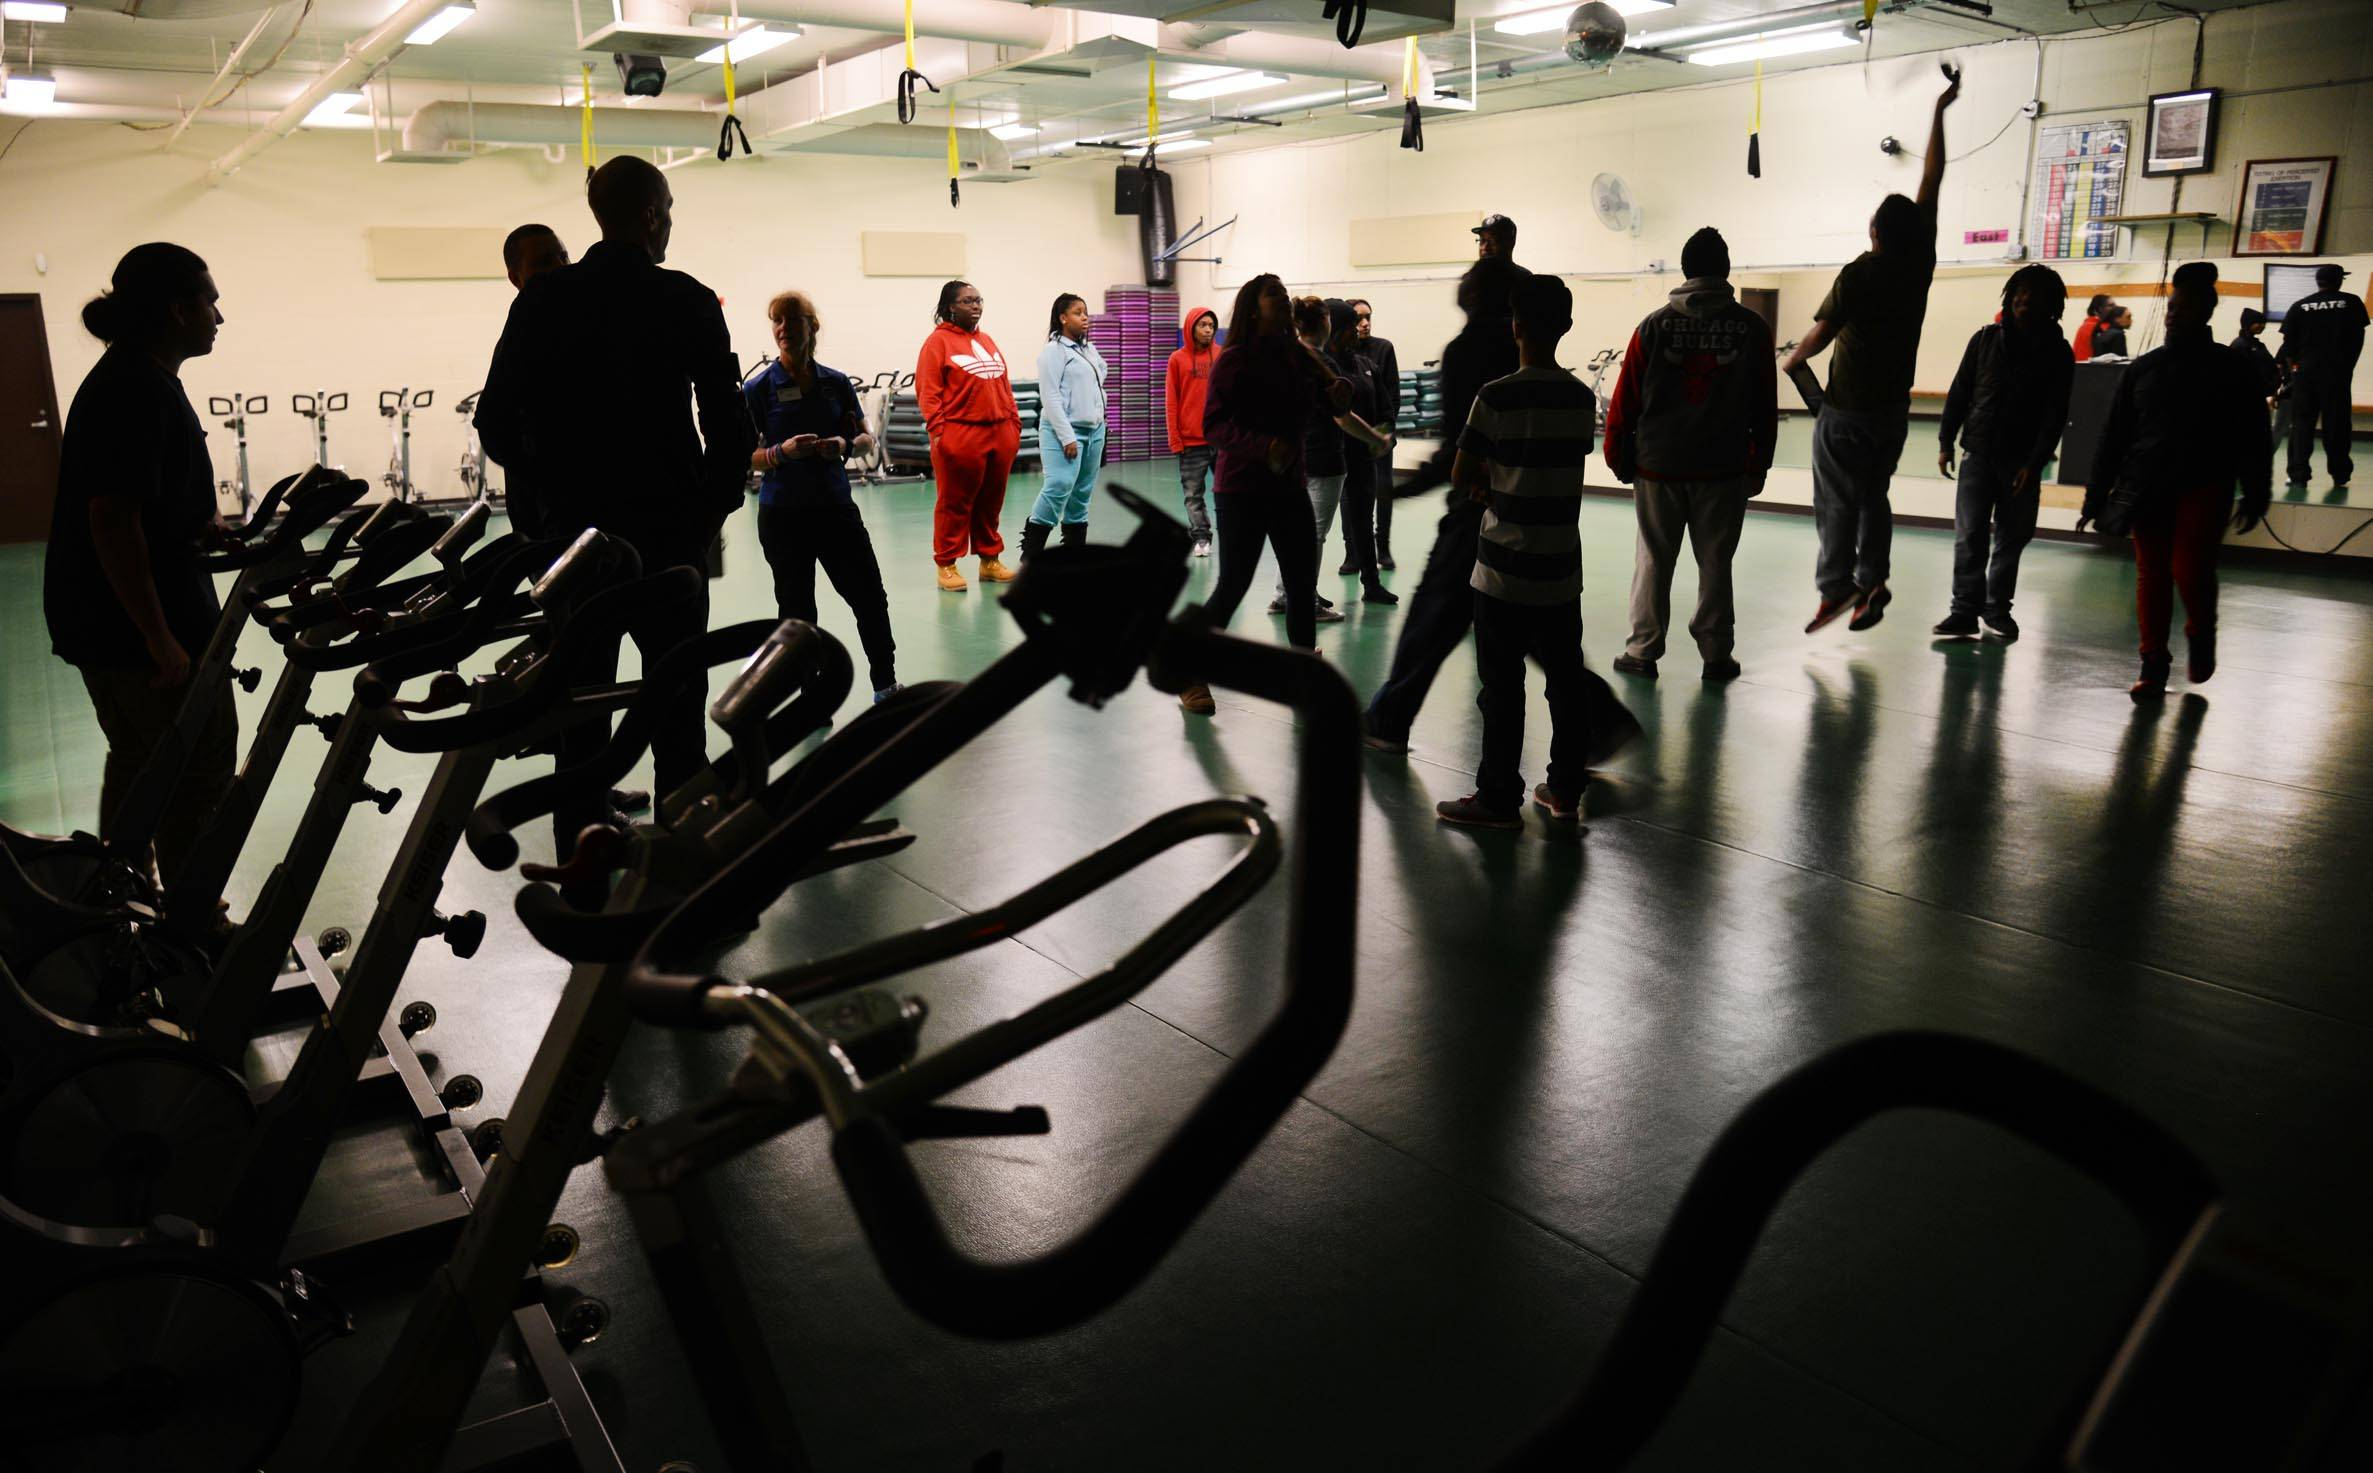 Students check out a fitness room at the Rakow Fitness Center, which is part of the Boys and Girls Clubs of Dundee Township Teen Center. With the creation of a new donor society, organization leaders hope to raise enough money to fund operating costs at one of eight sites for an entire year.